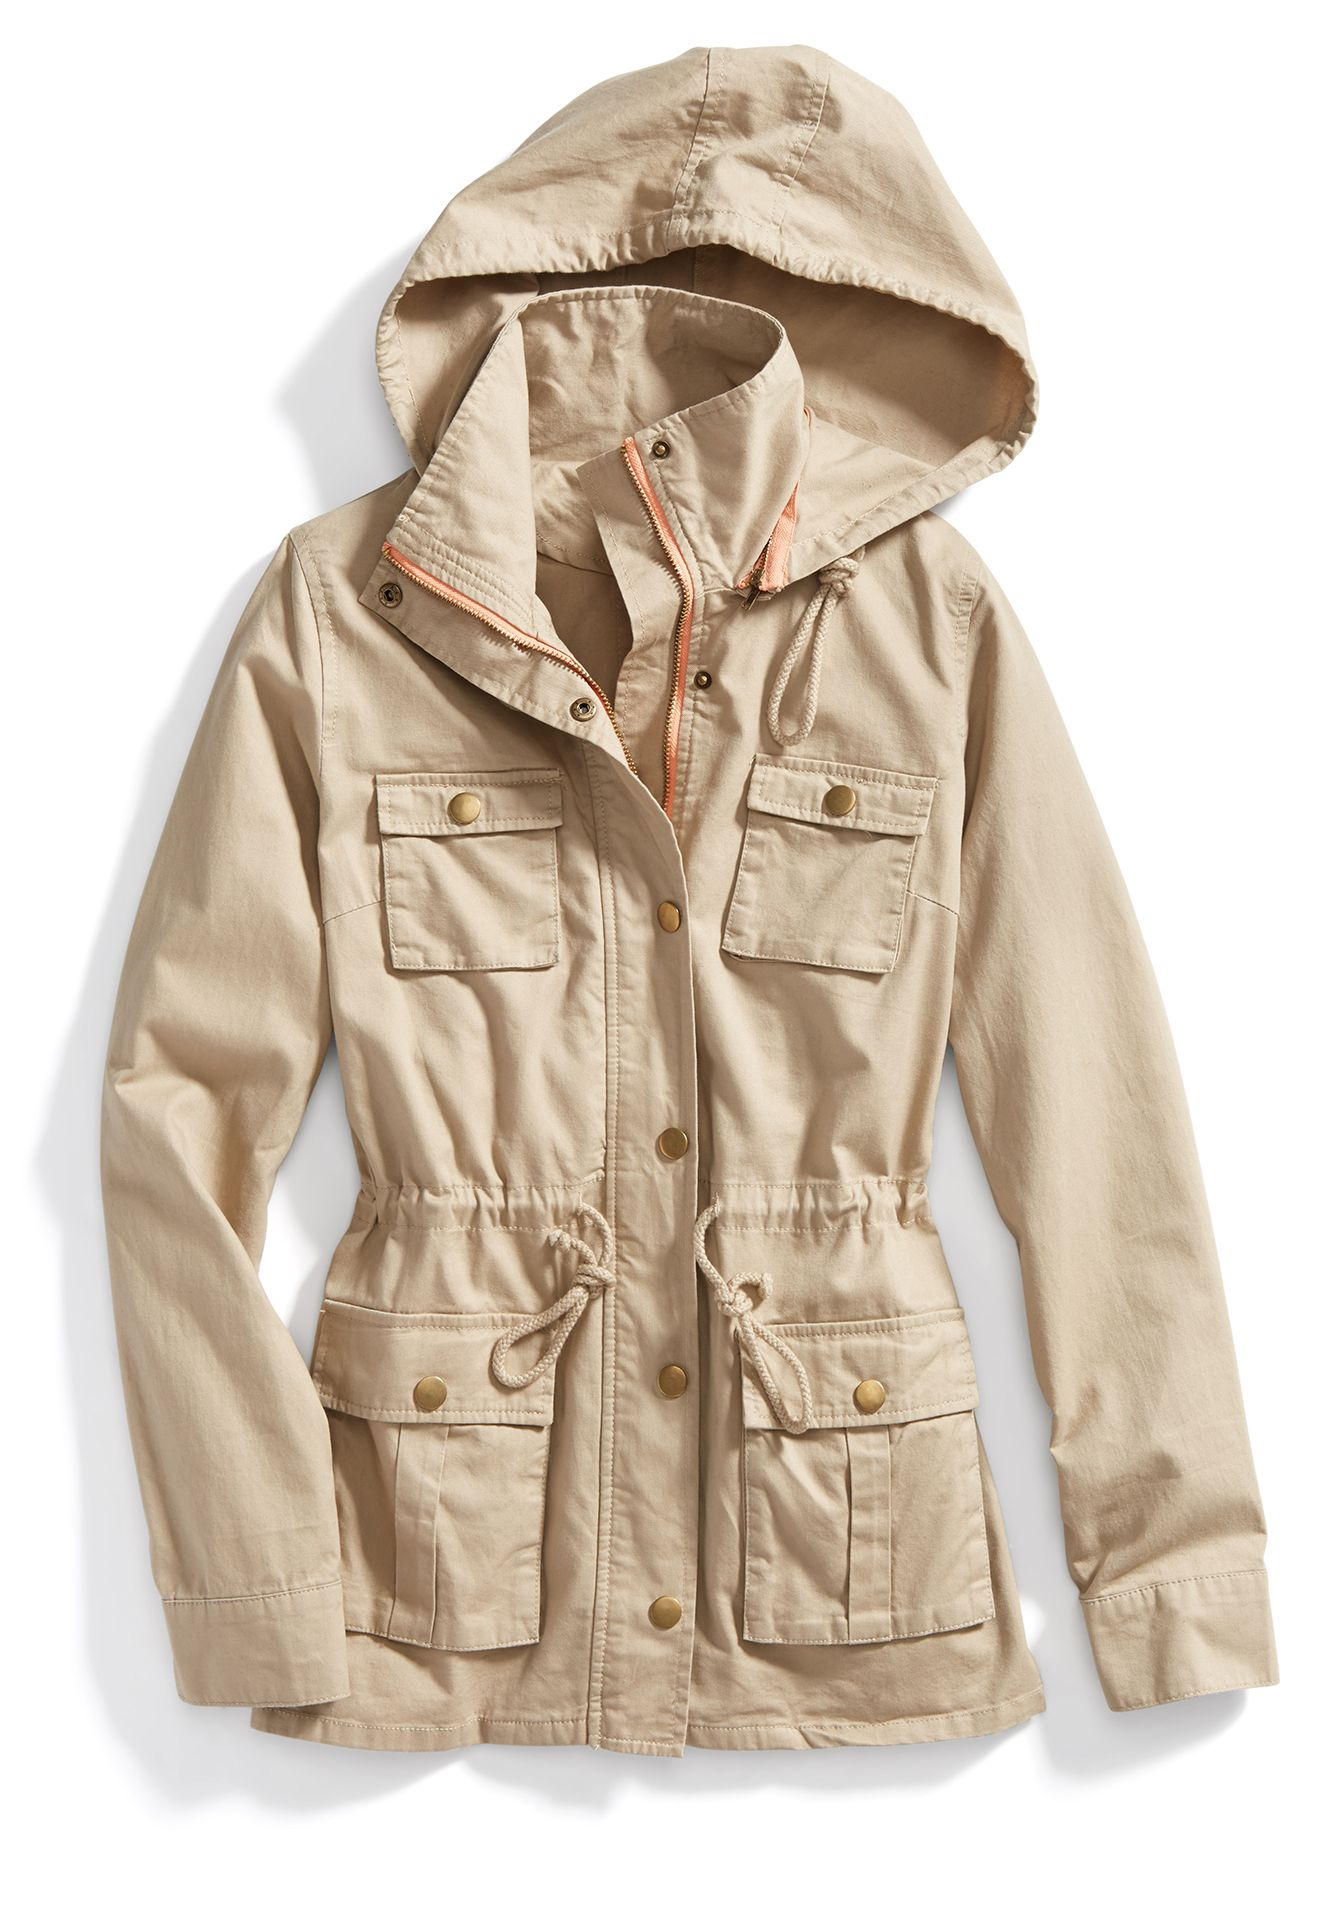 Stitch Fix Winter Essentials Layer This Lightweight Outerwear Over A Denim Jacket Or Chunky Sweater Stitch Fix Stitch Fix Outfits Fix Clothing [ 1920 x 1342 Pixel ]